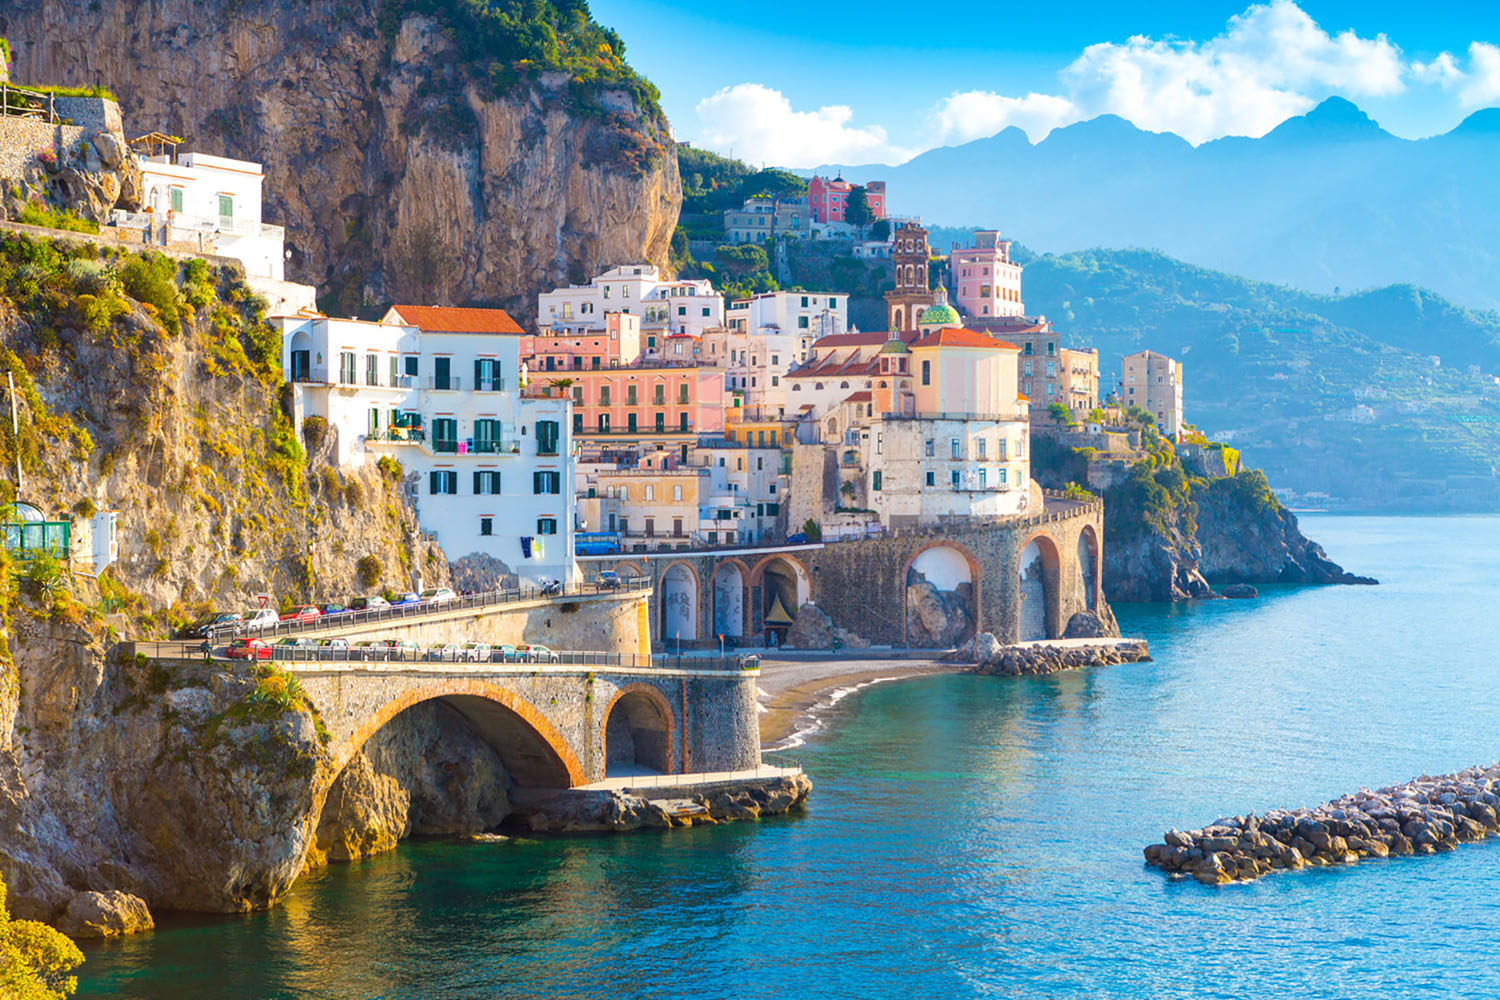 Morning view of Amalfi coast line in Italy